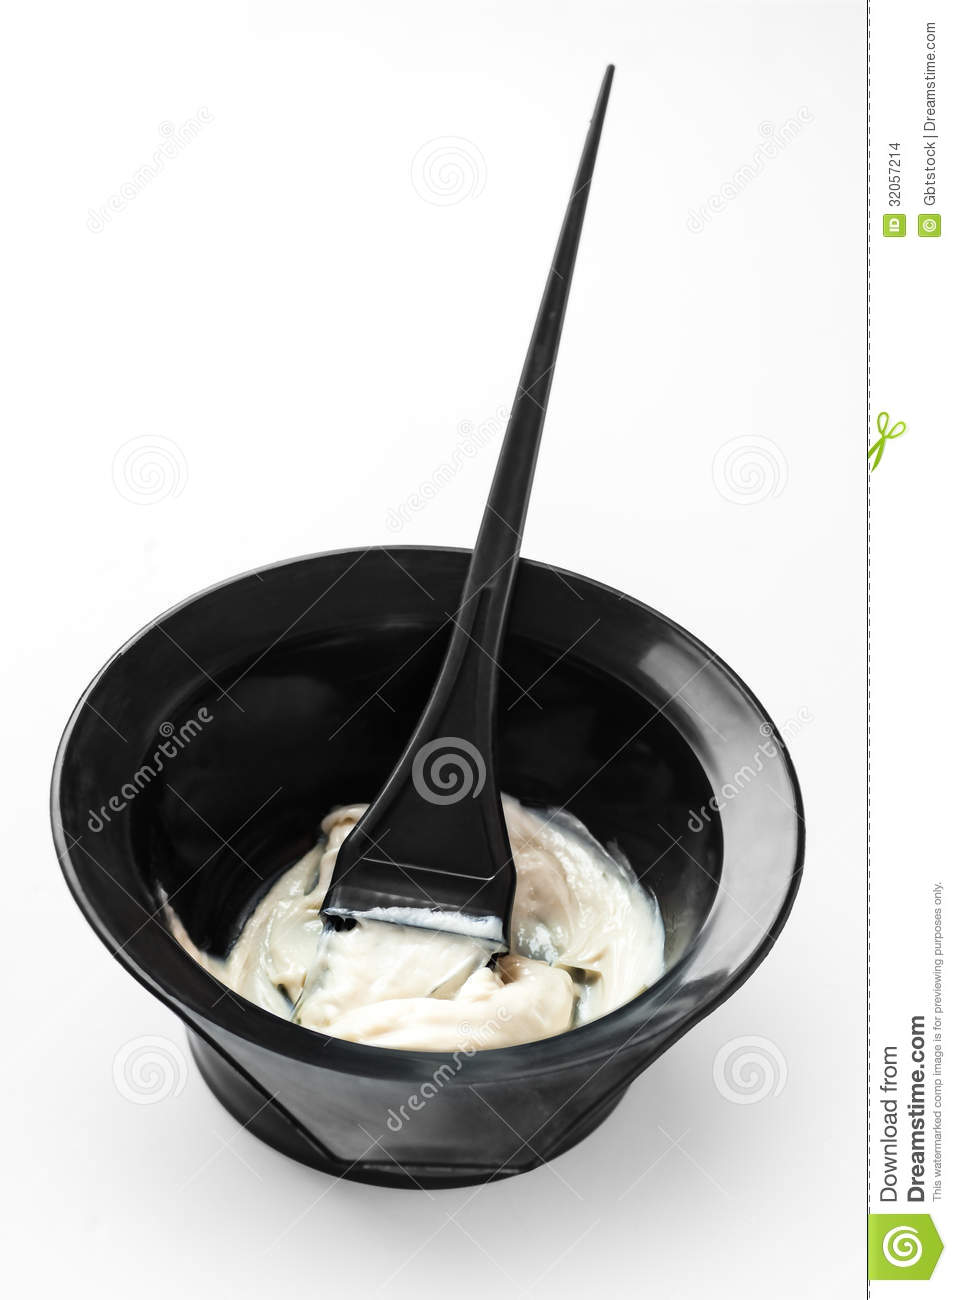 Mixing Hair Color In A Bowl Stock Images Image 32057214